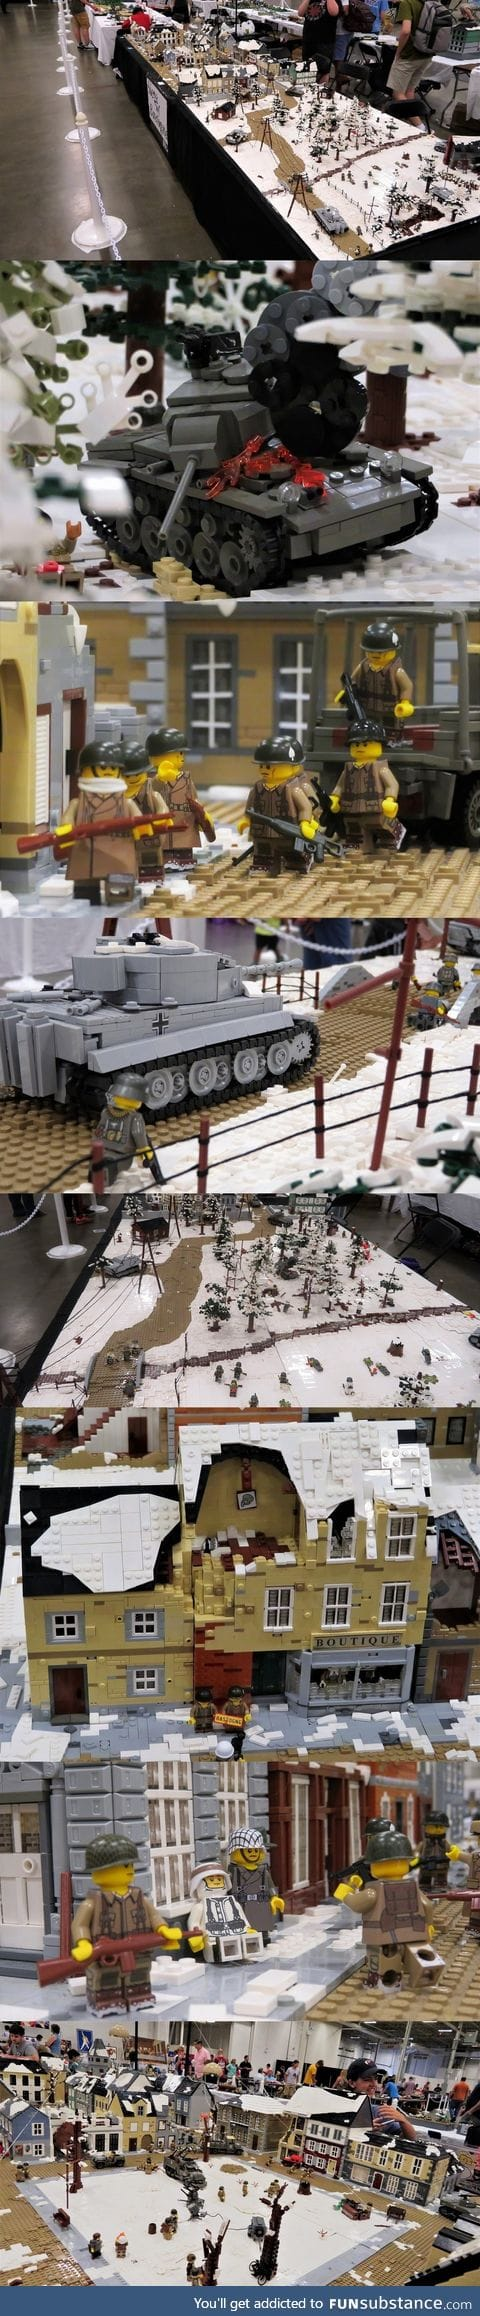 Lego in WWII